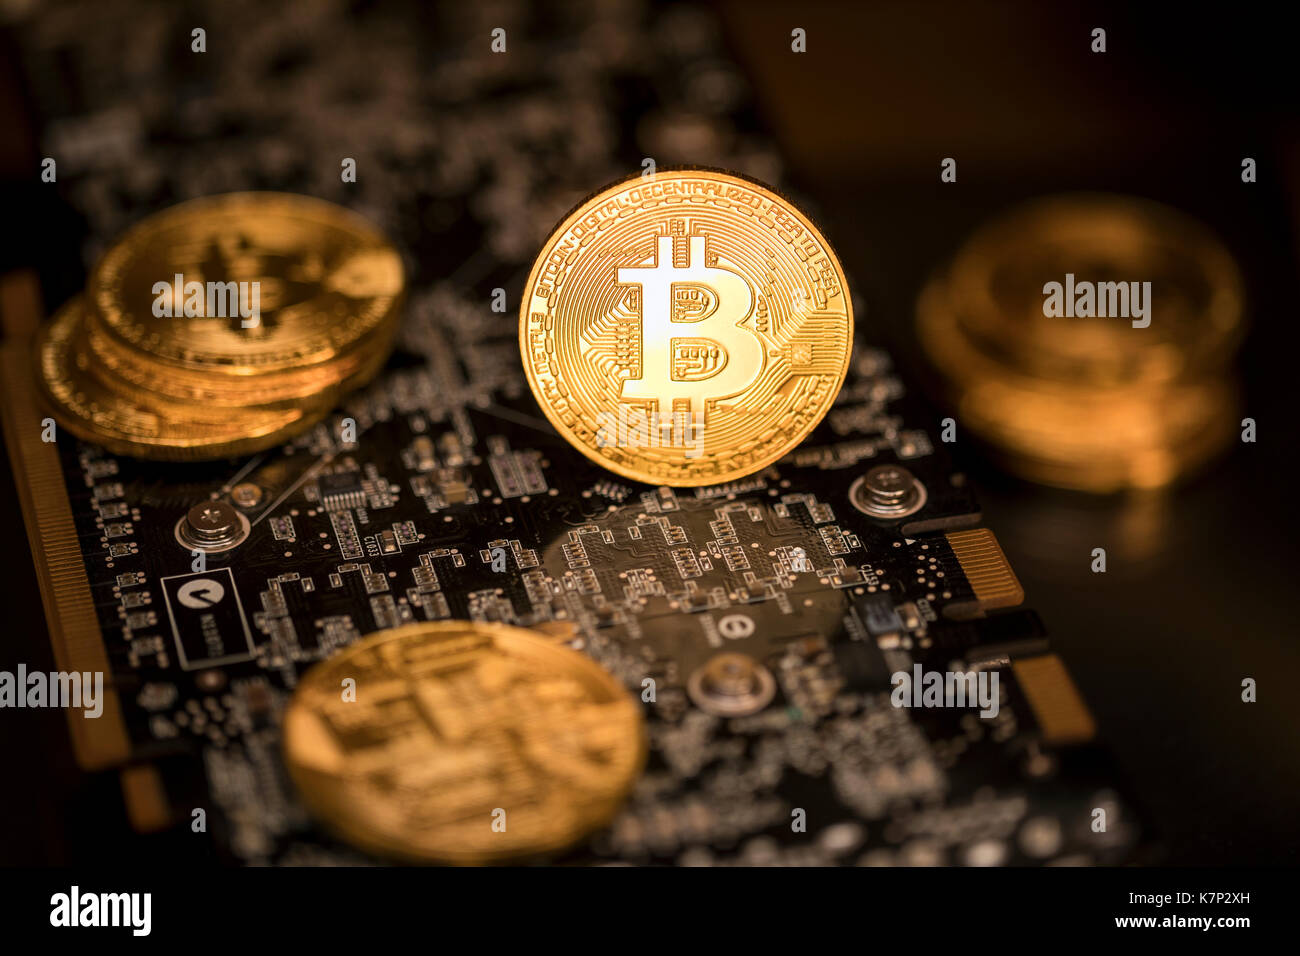 View of a stack of bitcoins on background of electronick schemes - blockchain and cyber currency concept - Stock Image